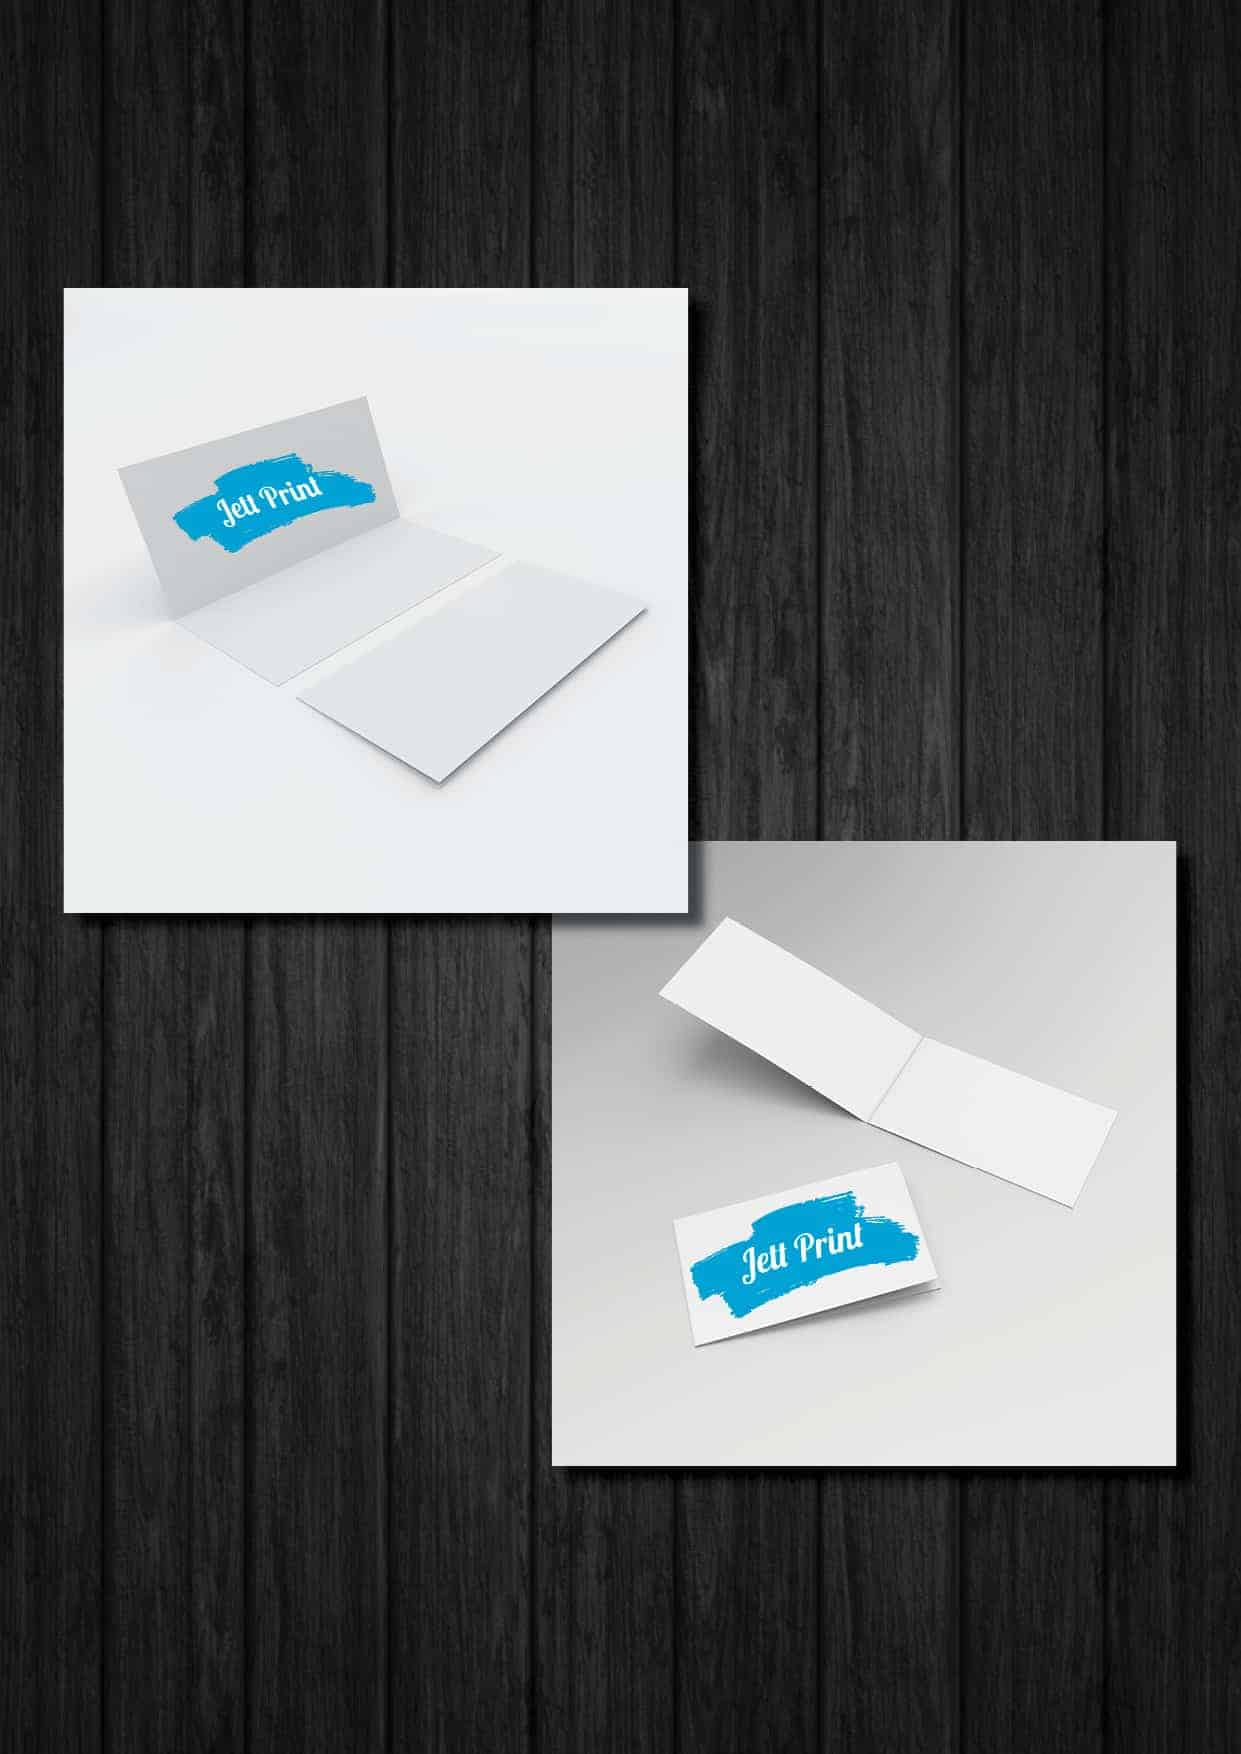 Cheap folded business cards images business card template cheap folded business cards gallery business card template folded business cards jett print quality online printing reheart Choice Image